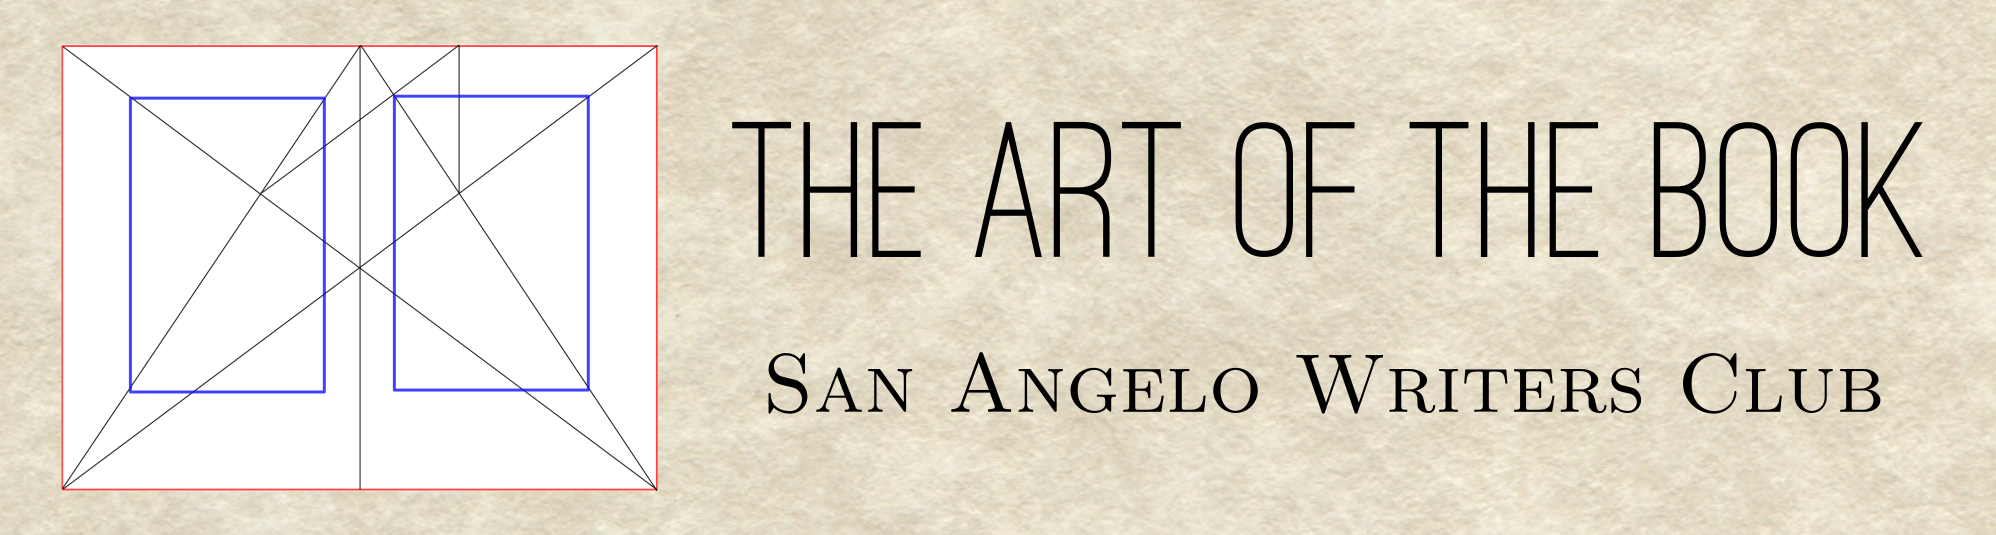 I Will Give A Talk The Art Of Book At San Angelo Writers Club On Tuesday May 9 700 Pm Discuss Interior Design For Beginners